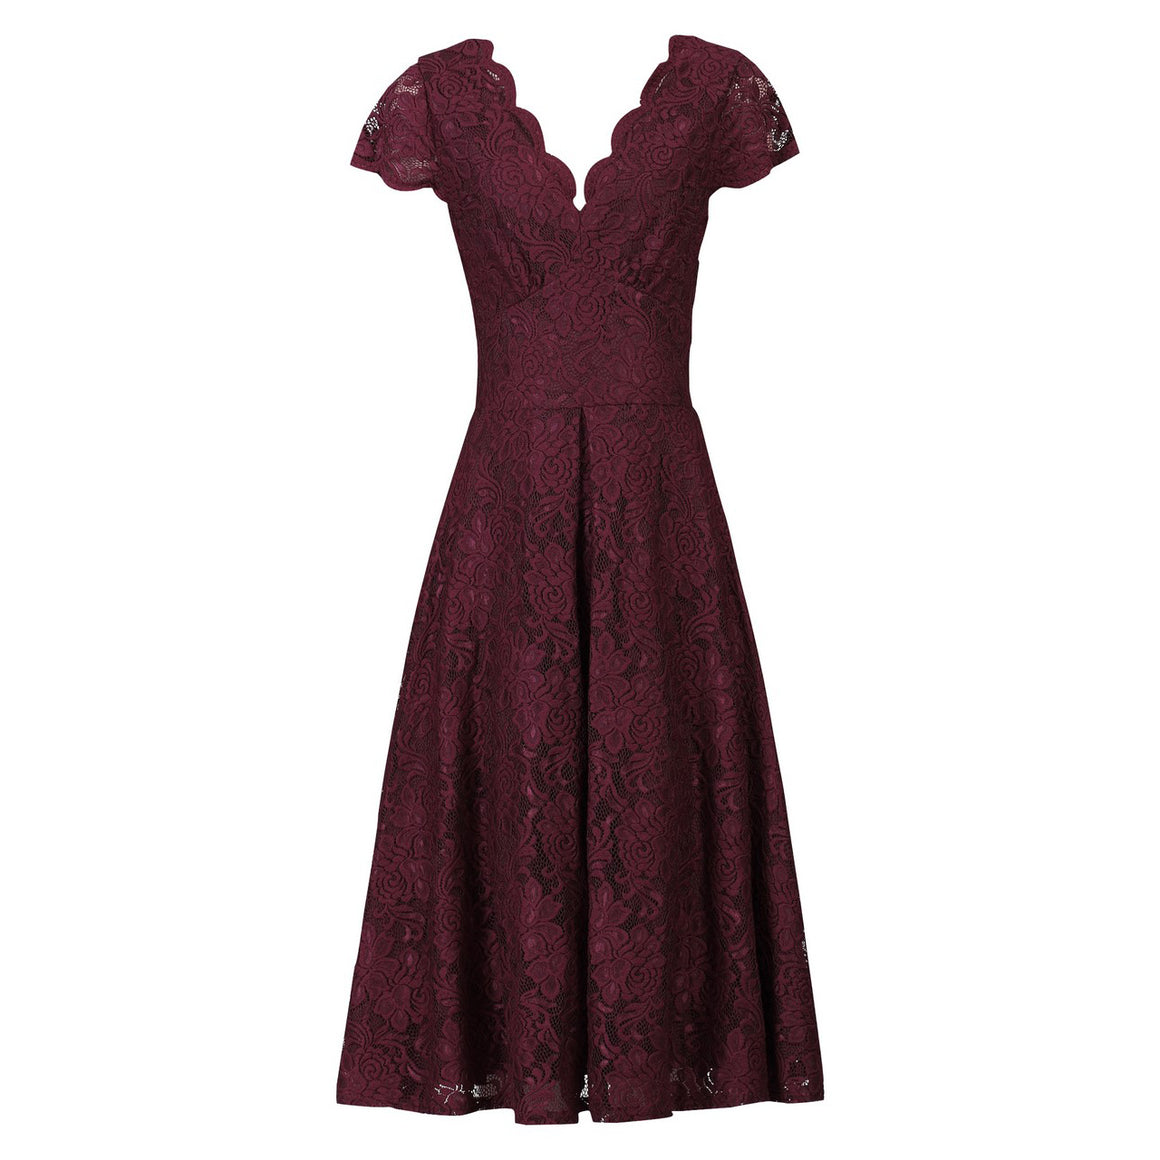 Burgundy Red Cap Sleeve Scallop Neck Embroidered Lace 50s Swing Dress - Pretty Kitty Fashion